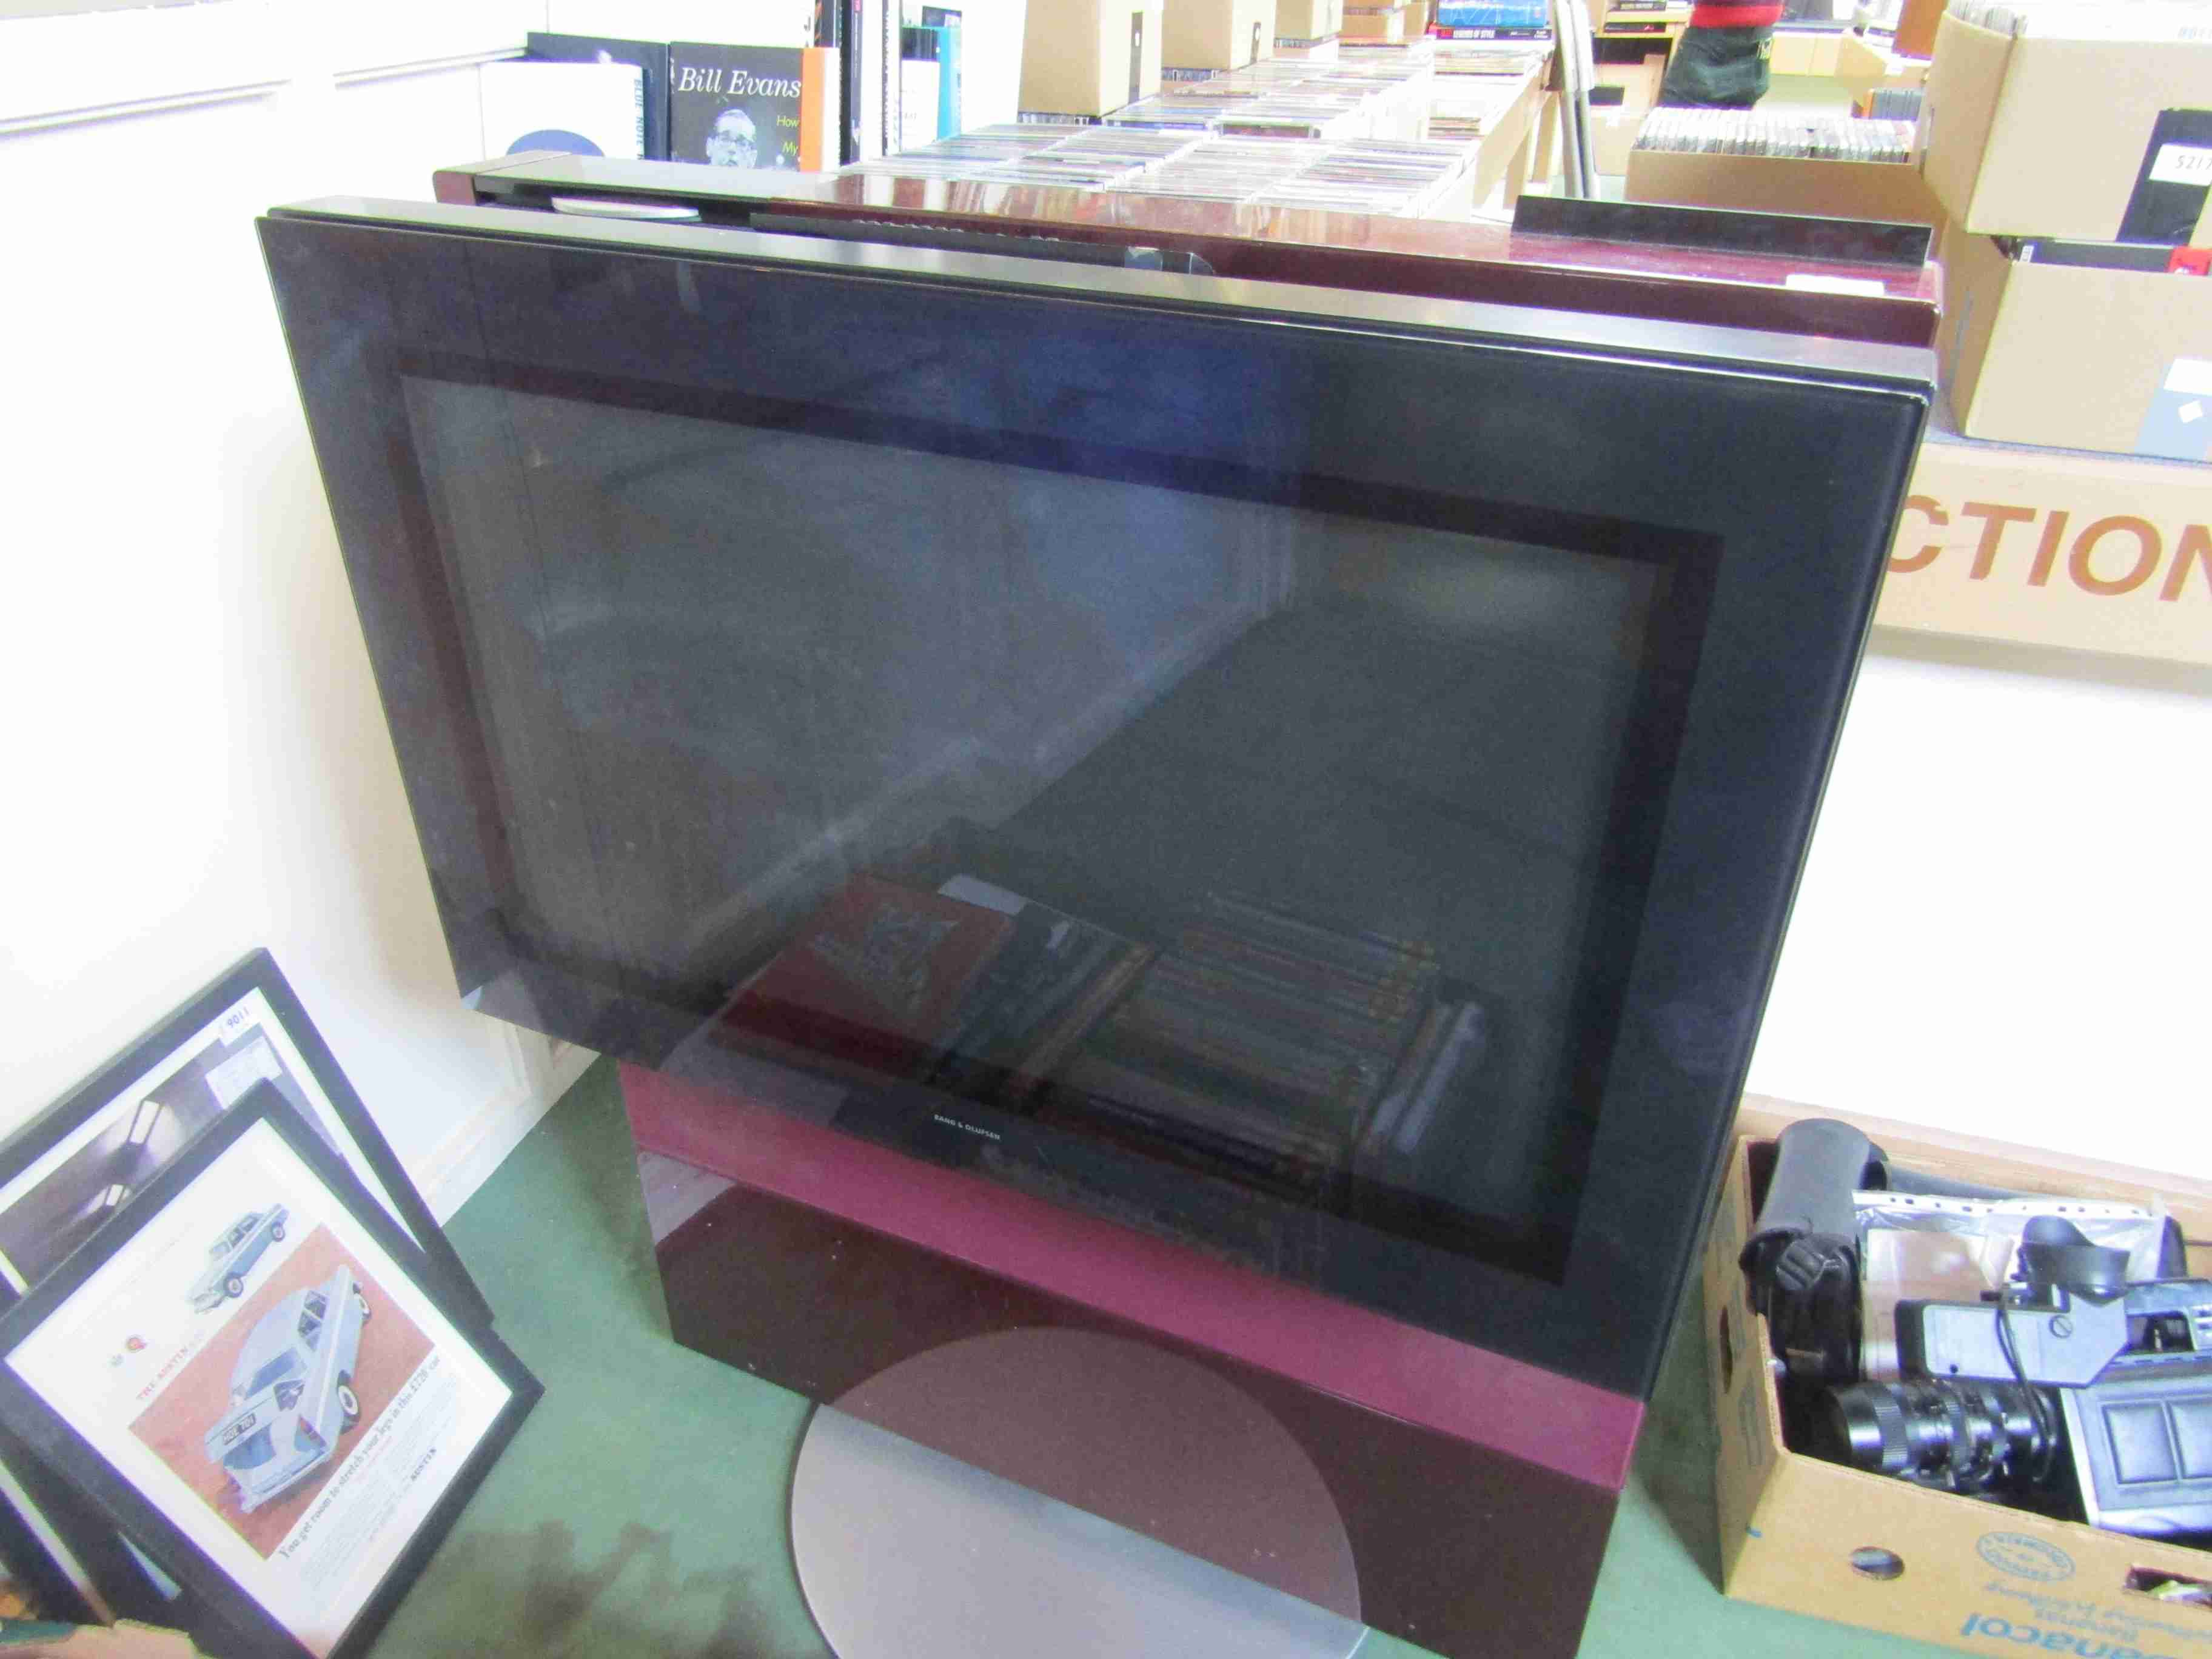 A Bang & Olufsen Beovision Avant 32 DVD television with remote